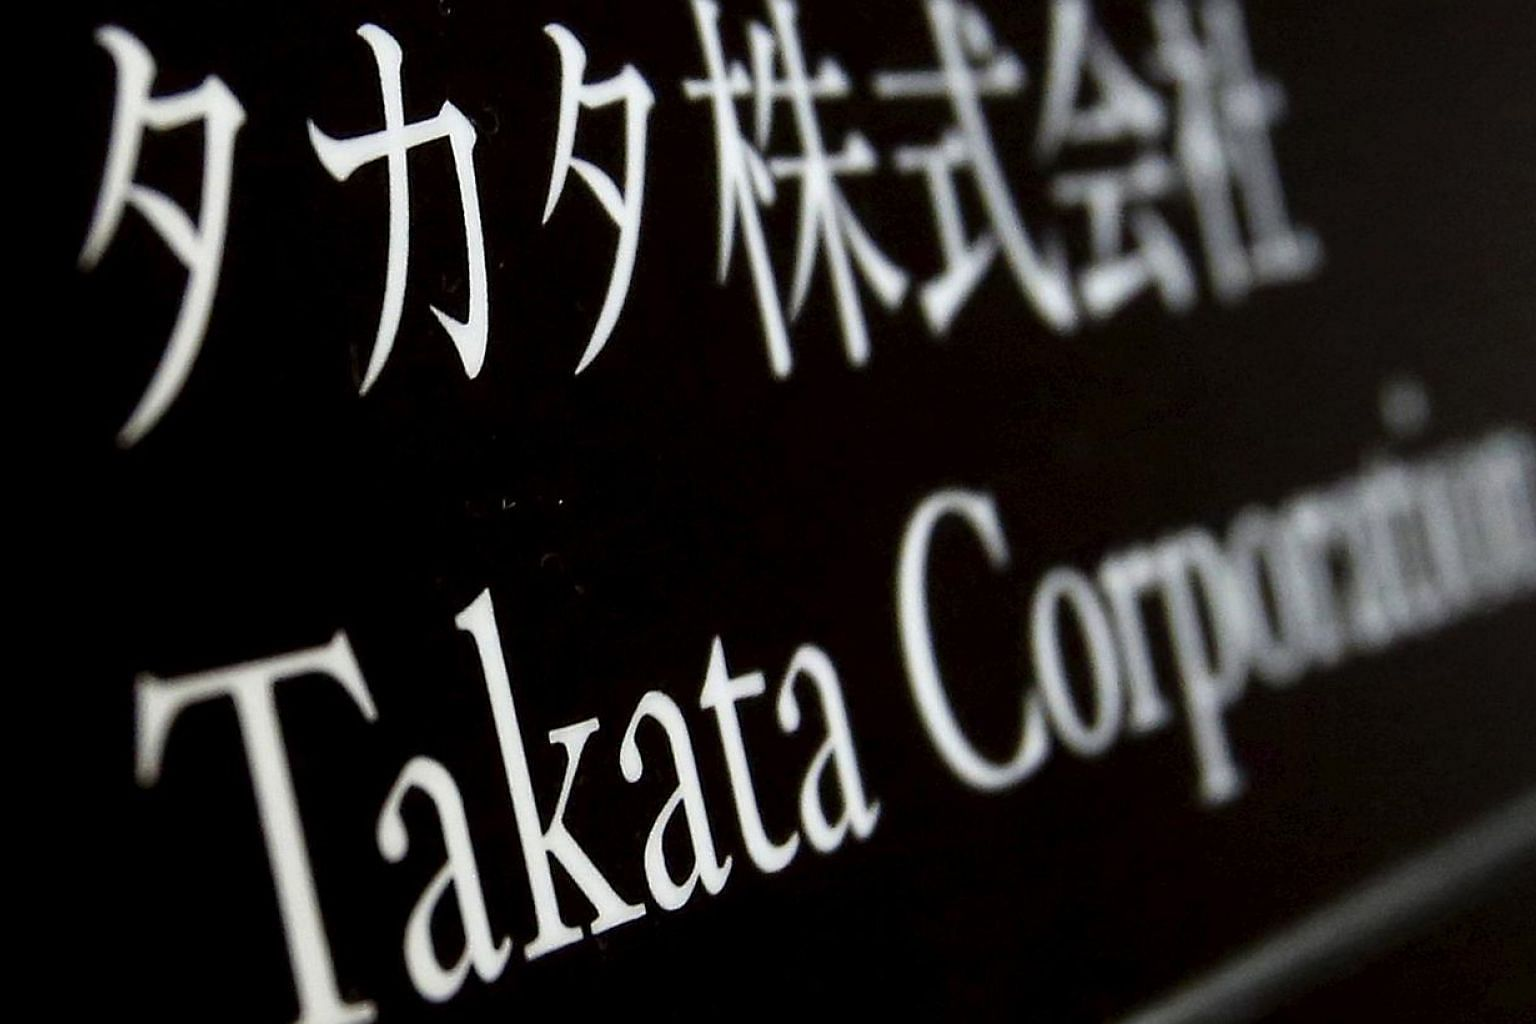 Takata began changing the safety devices in 2008 to reduce the risk that humidity would cause them to deploy abnormally, three people familiar with the matter said. -- PHOTO: REUTERS